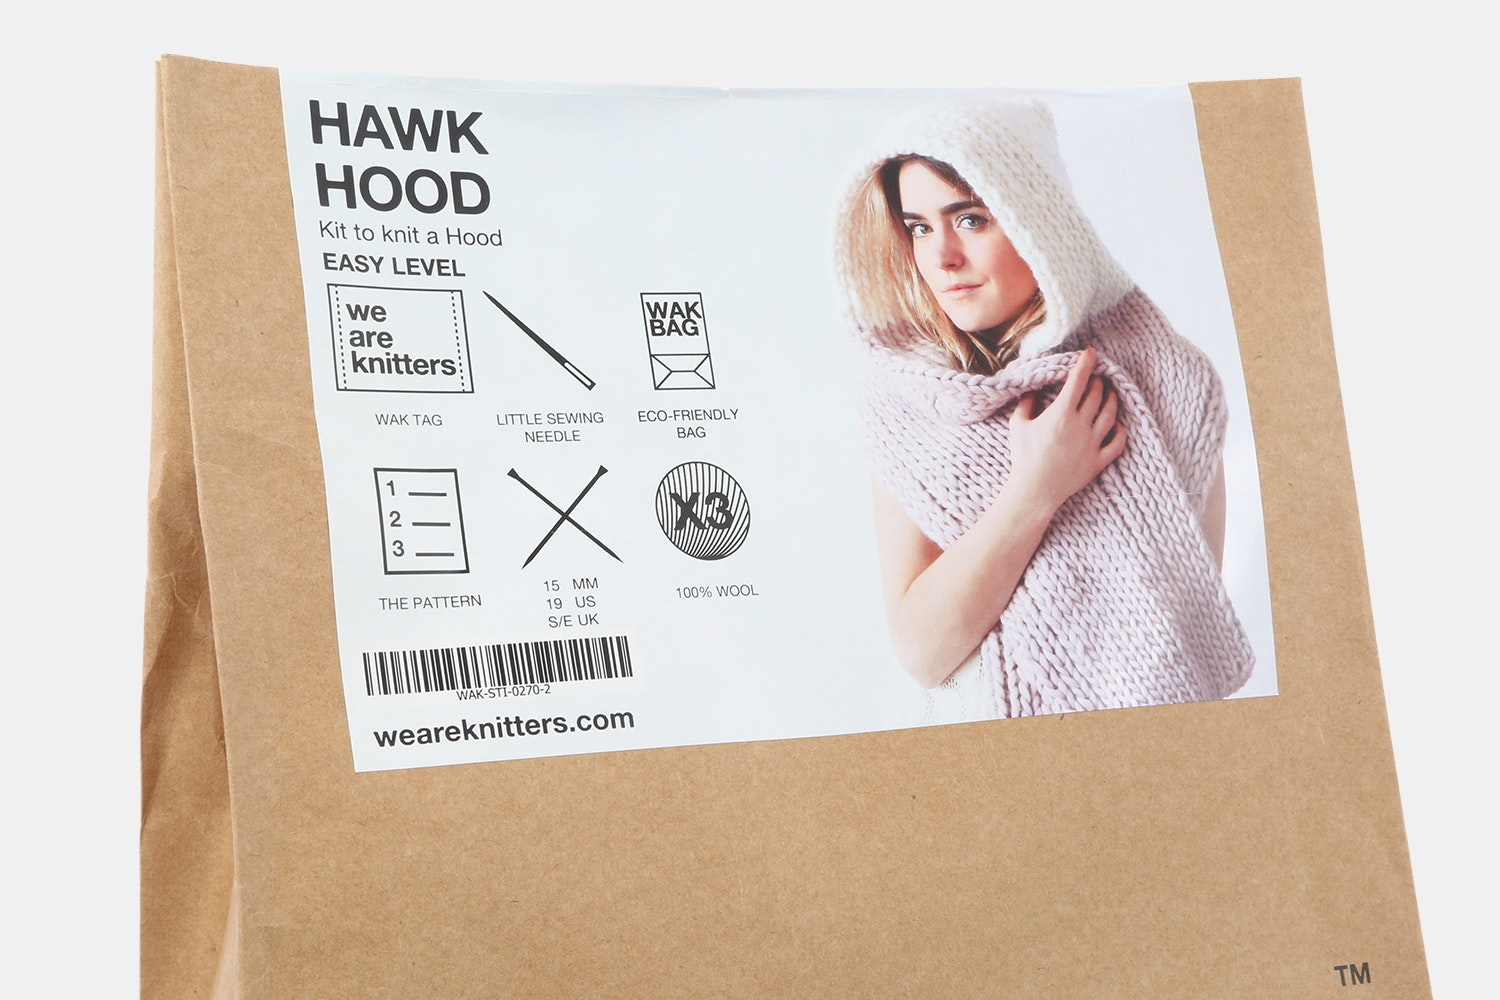 Hawk Hood Kit by We are Knitters